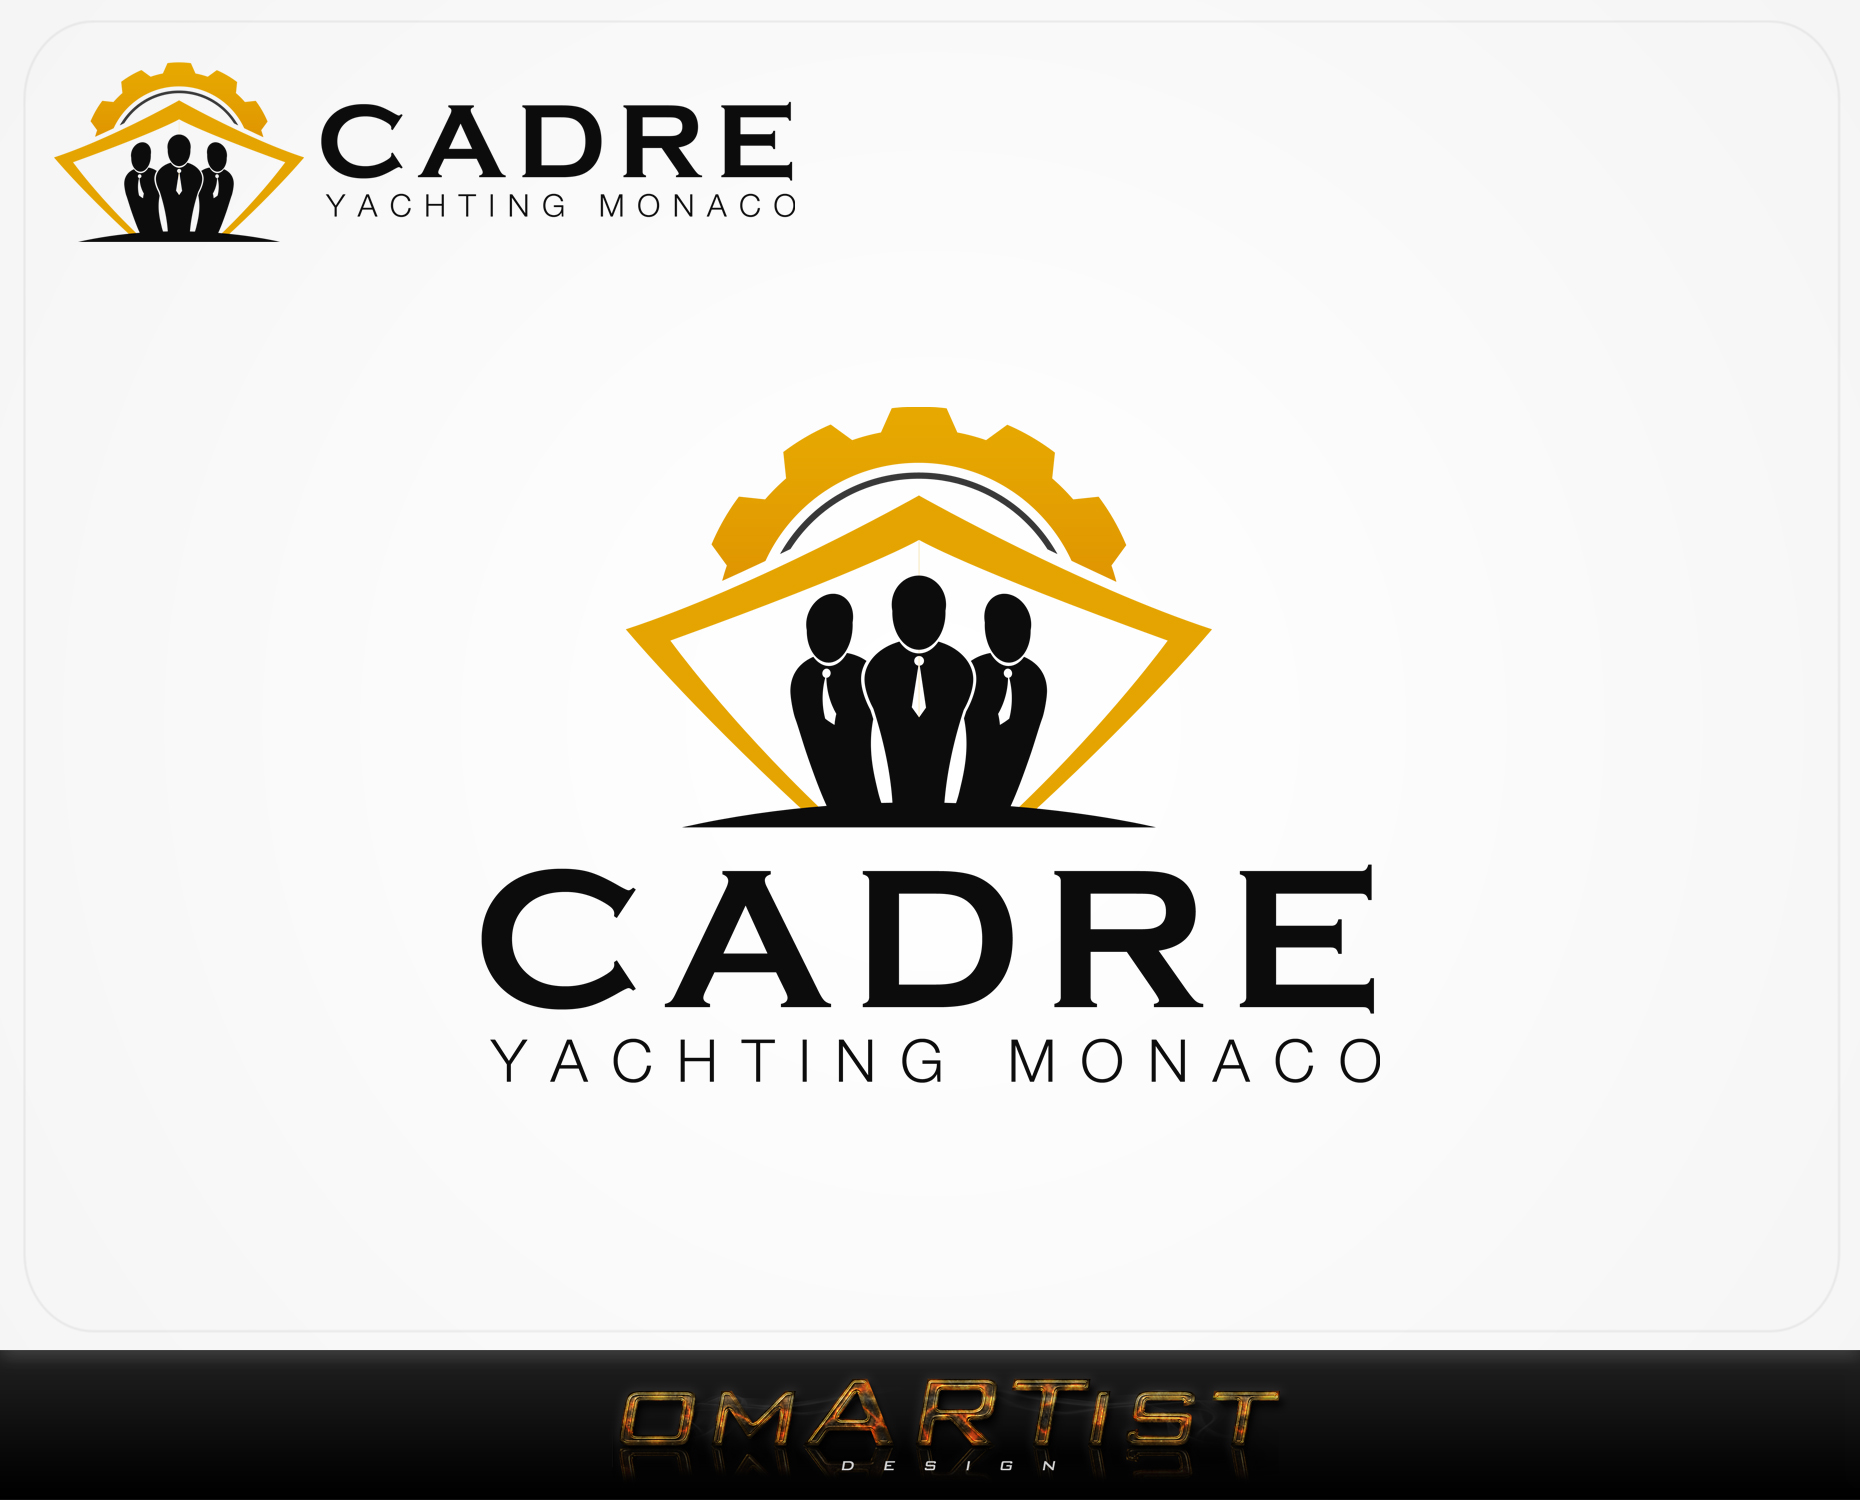 Logo Design by omARTist - Entry No. 413 in the Logo Design Contest New Logo Design for Cadre Yachting Monaco.